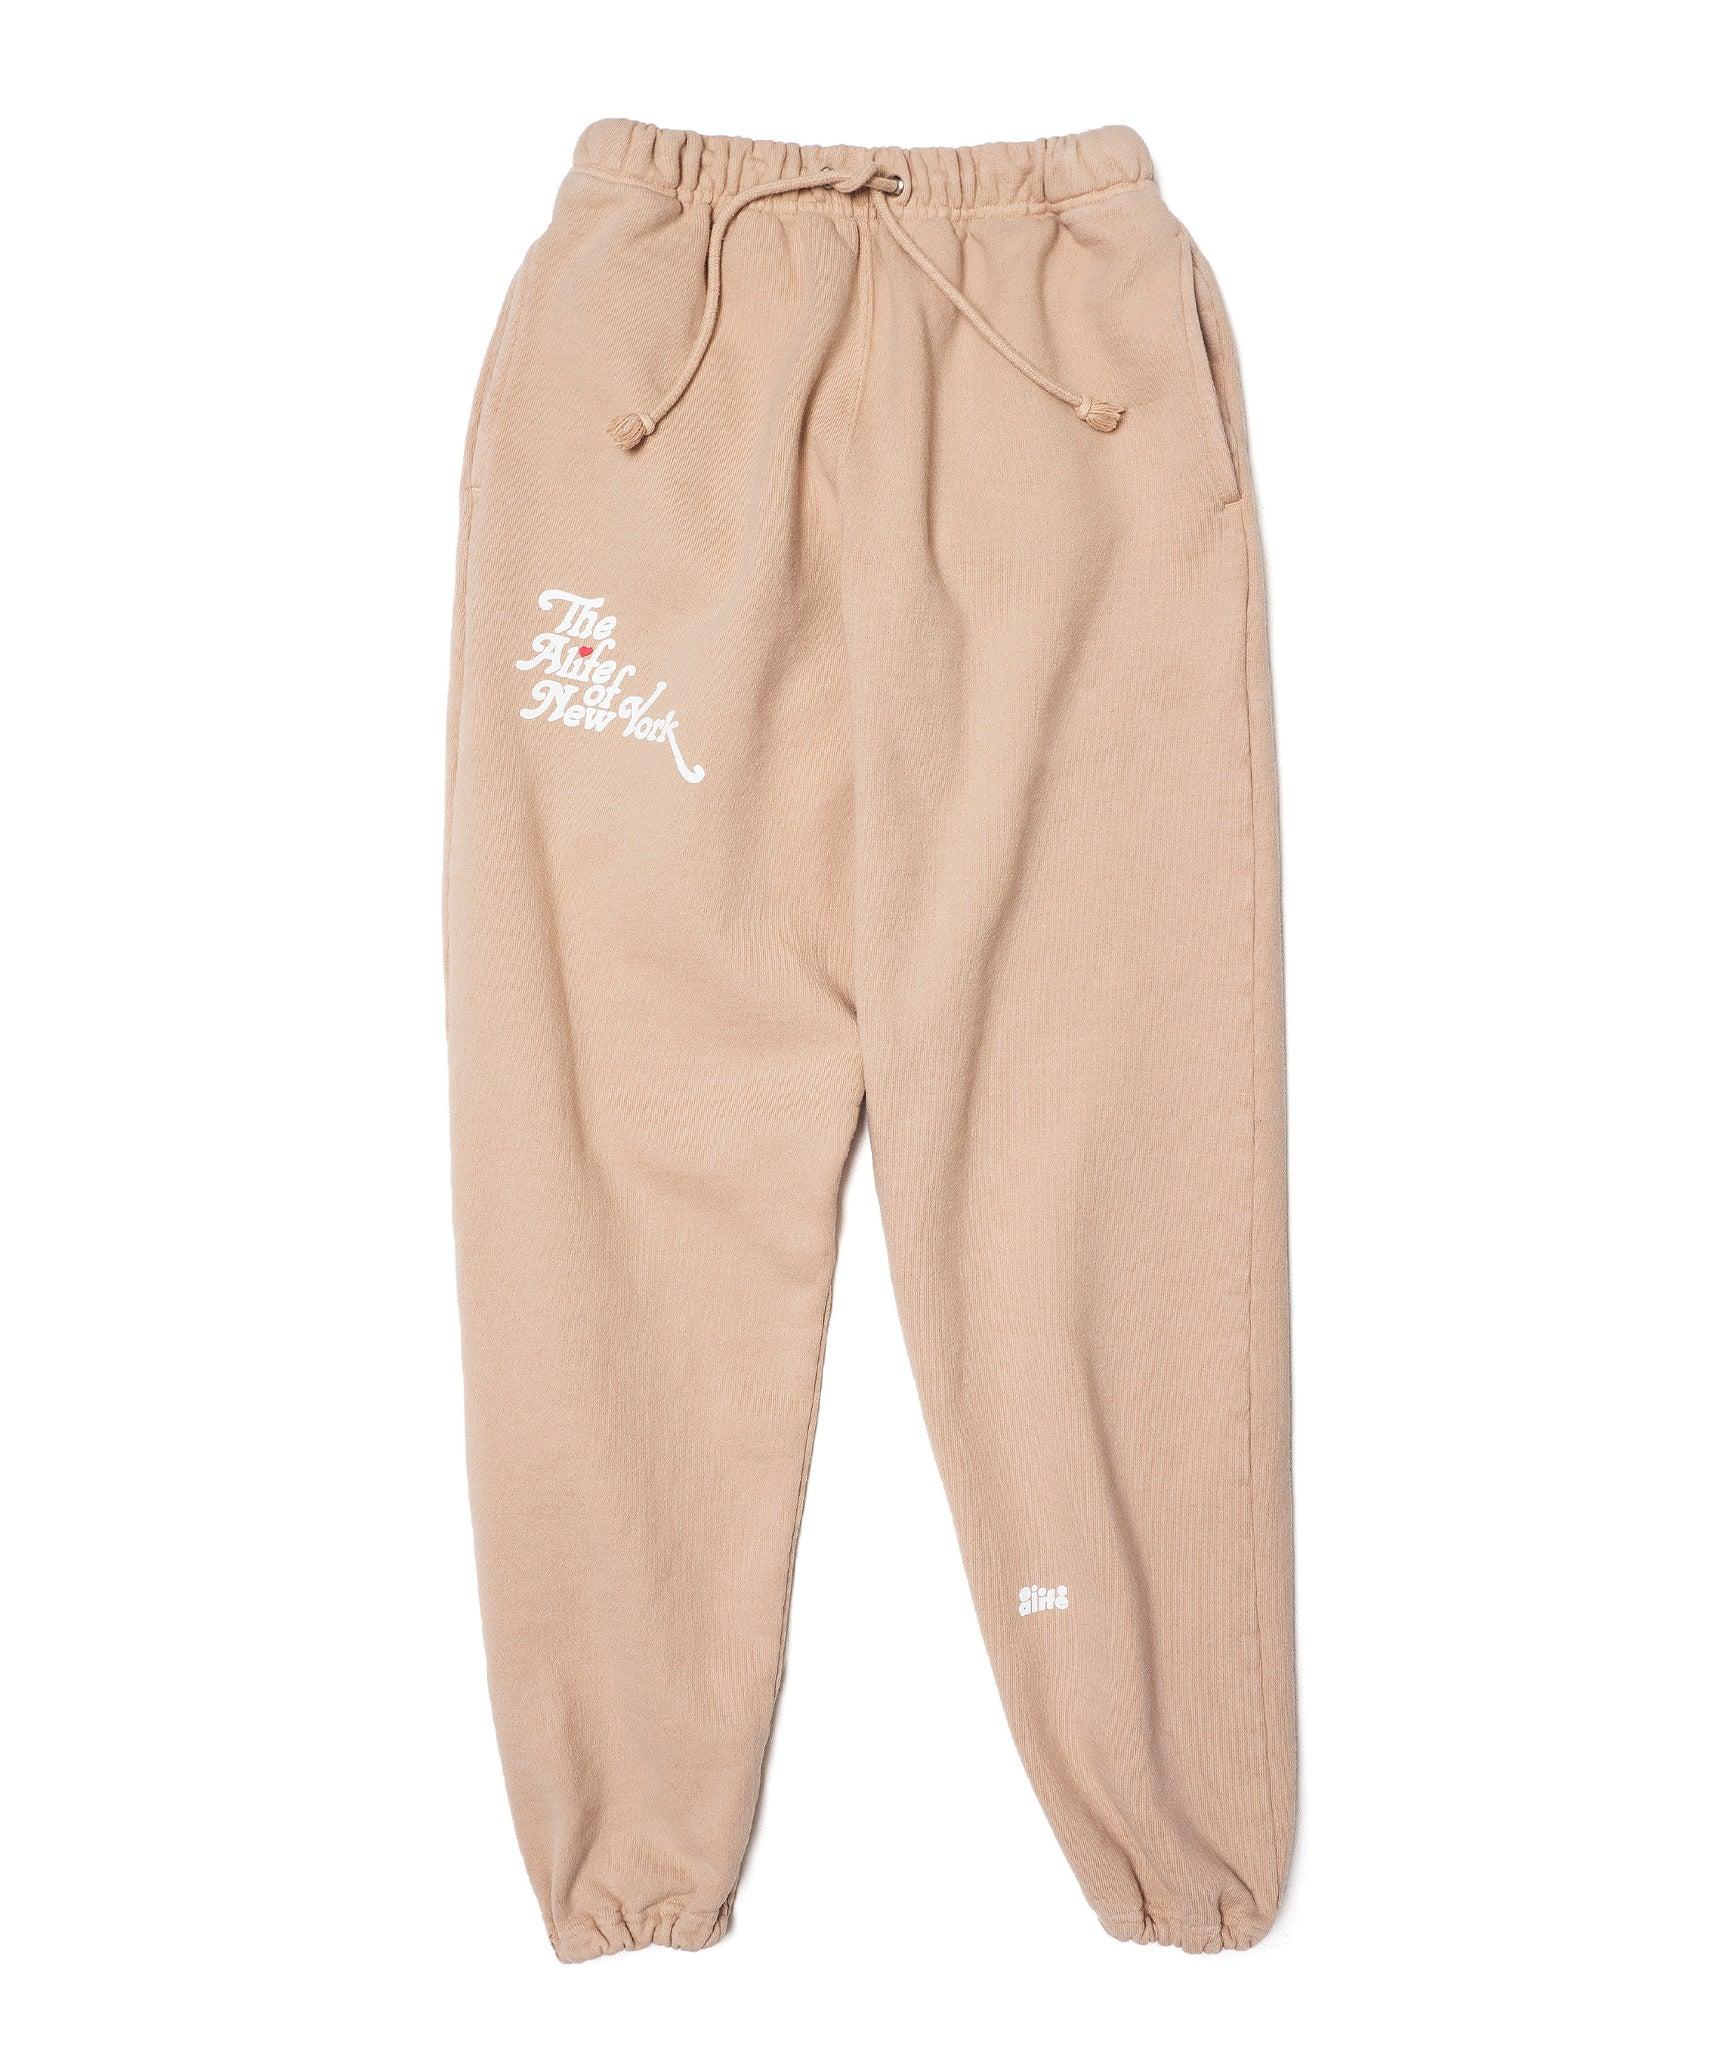 Alife of New York Sweatpant